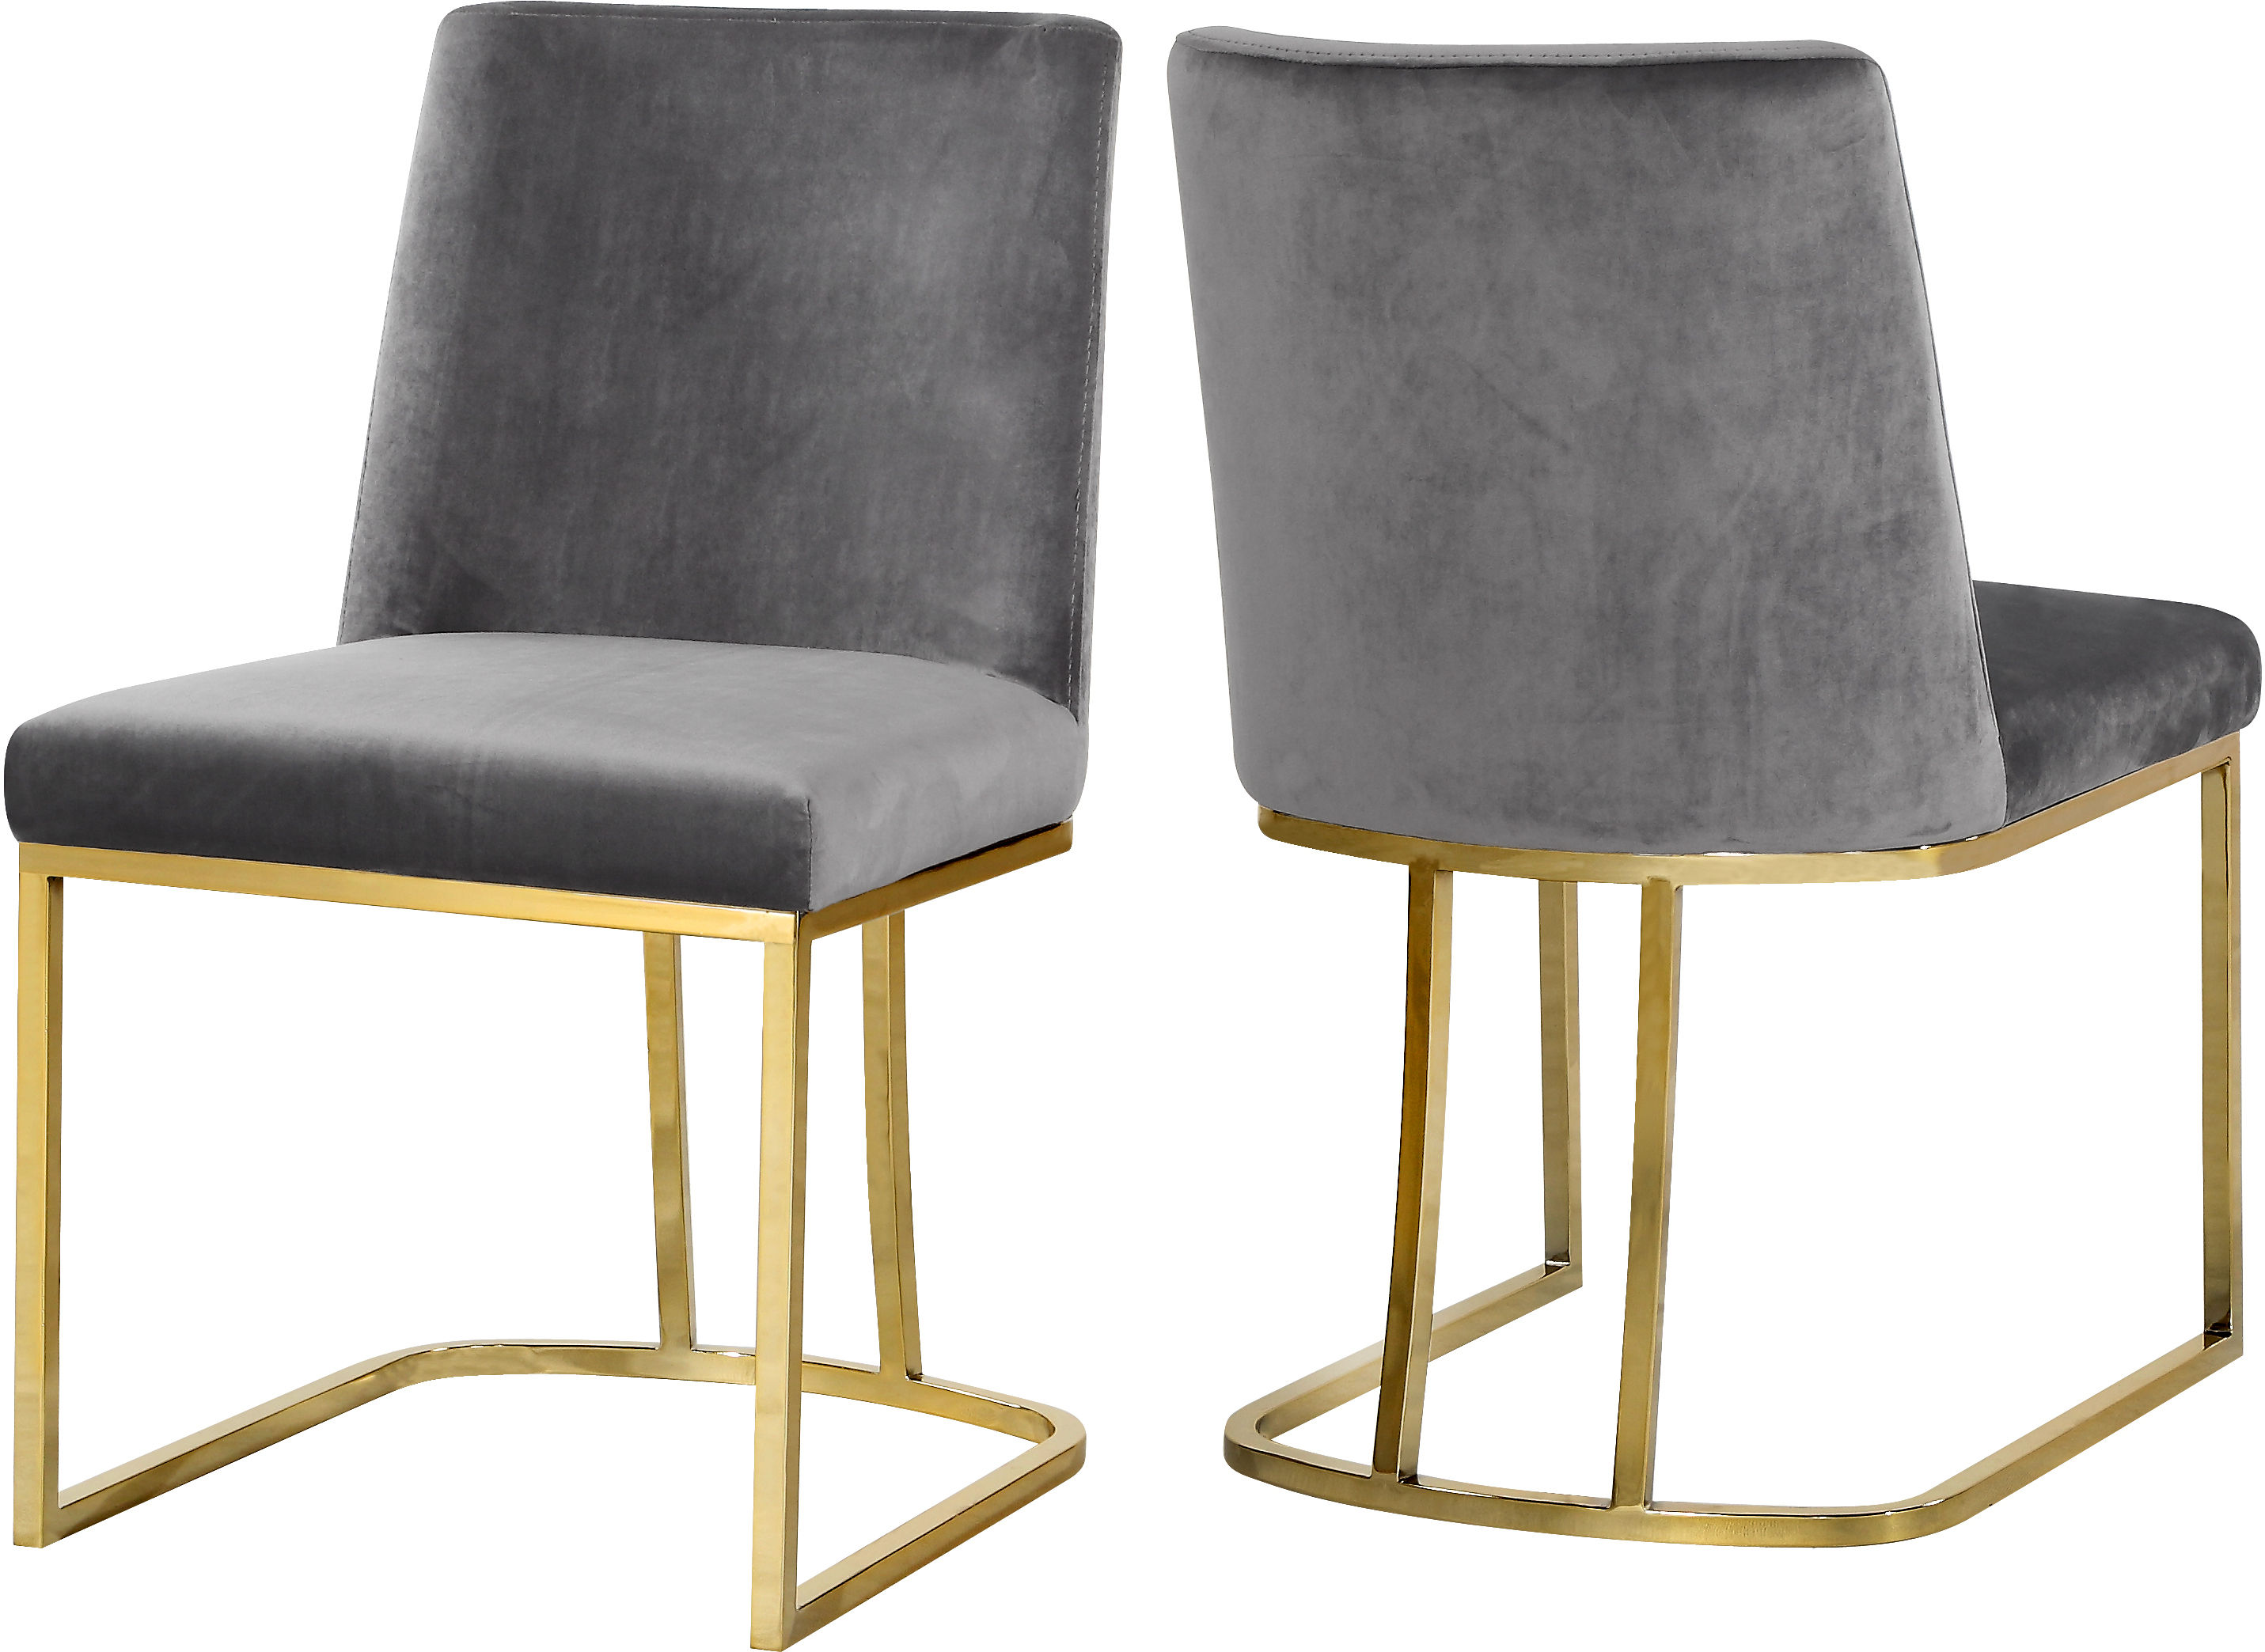 Stupendous 2 Meridian Furniture Heidi Grey Velvet Gold Base Dining Chairs Machost Co Dining Chair Design Ideas Machostcouk